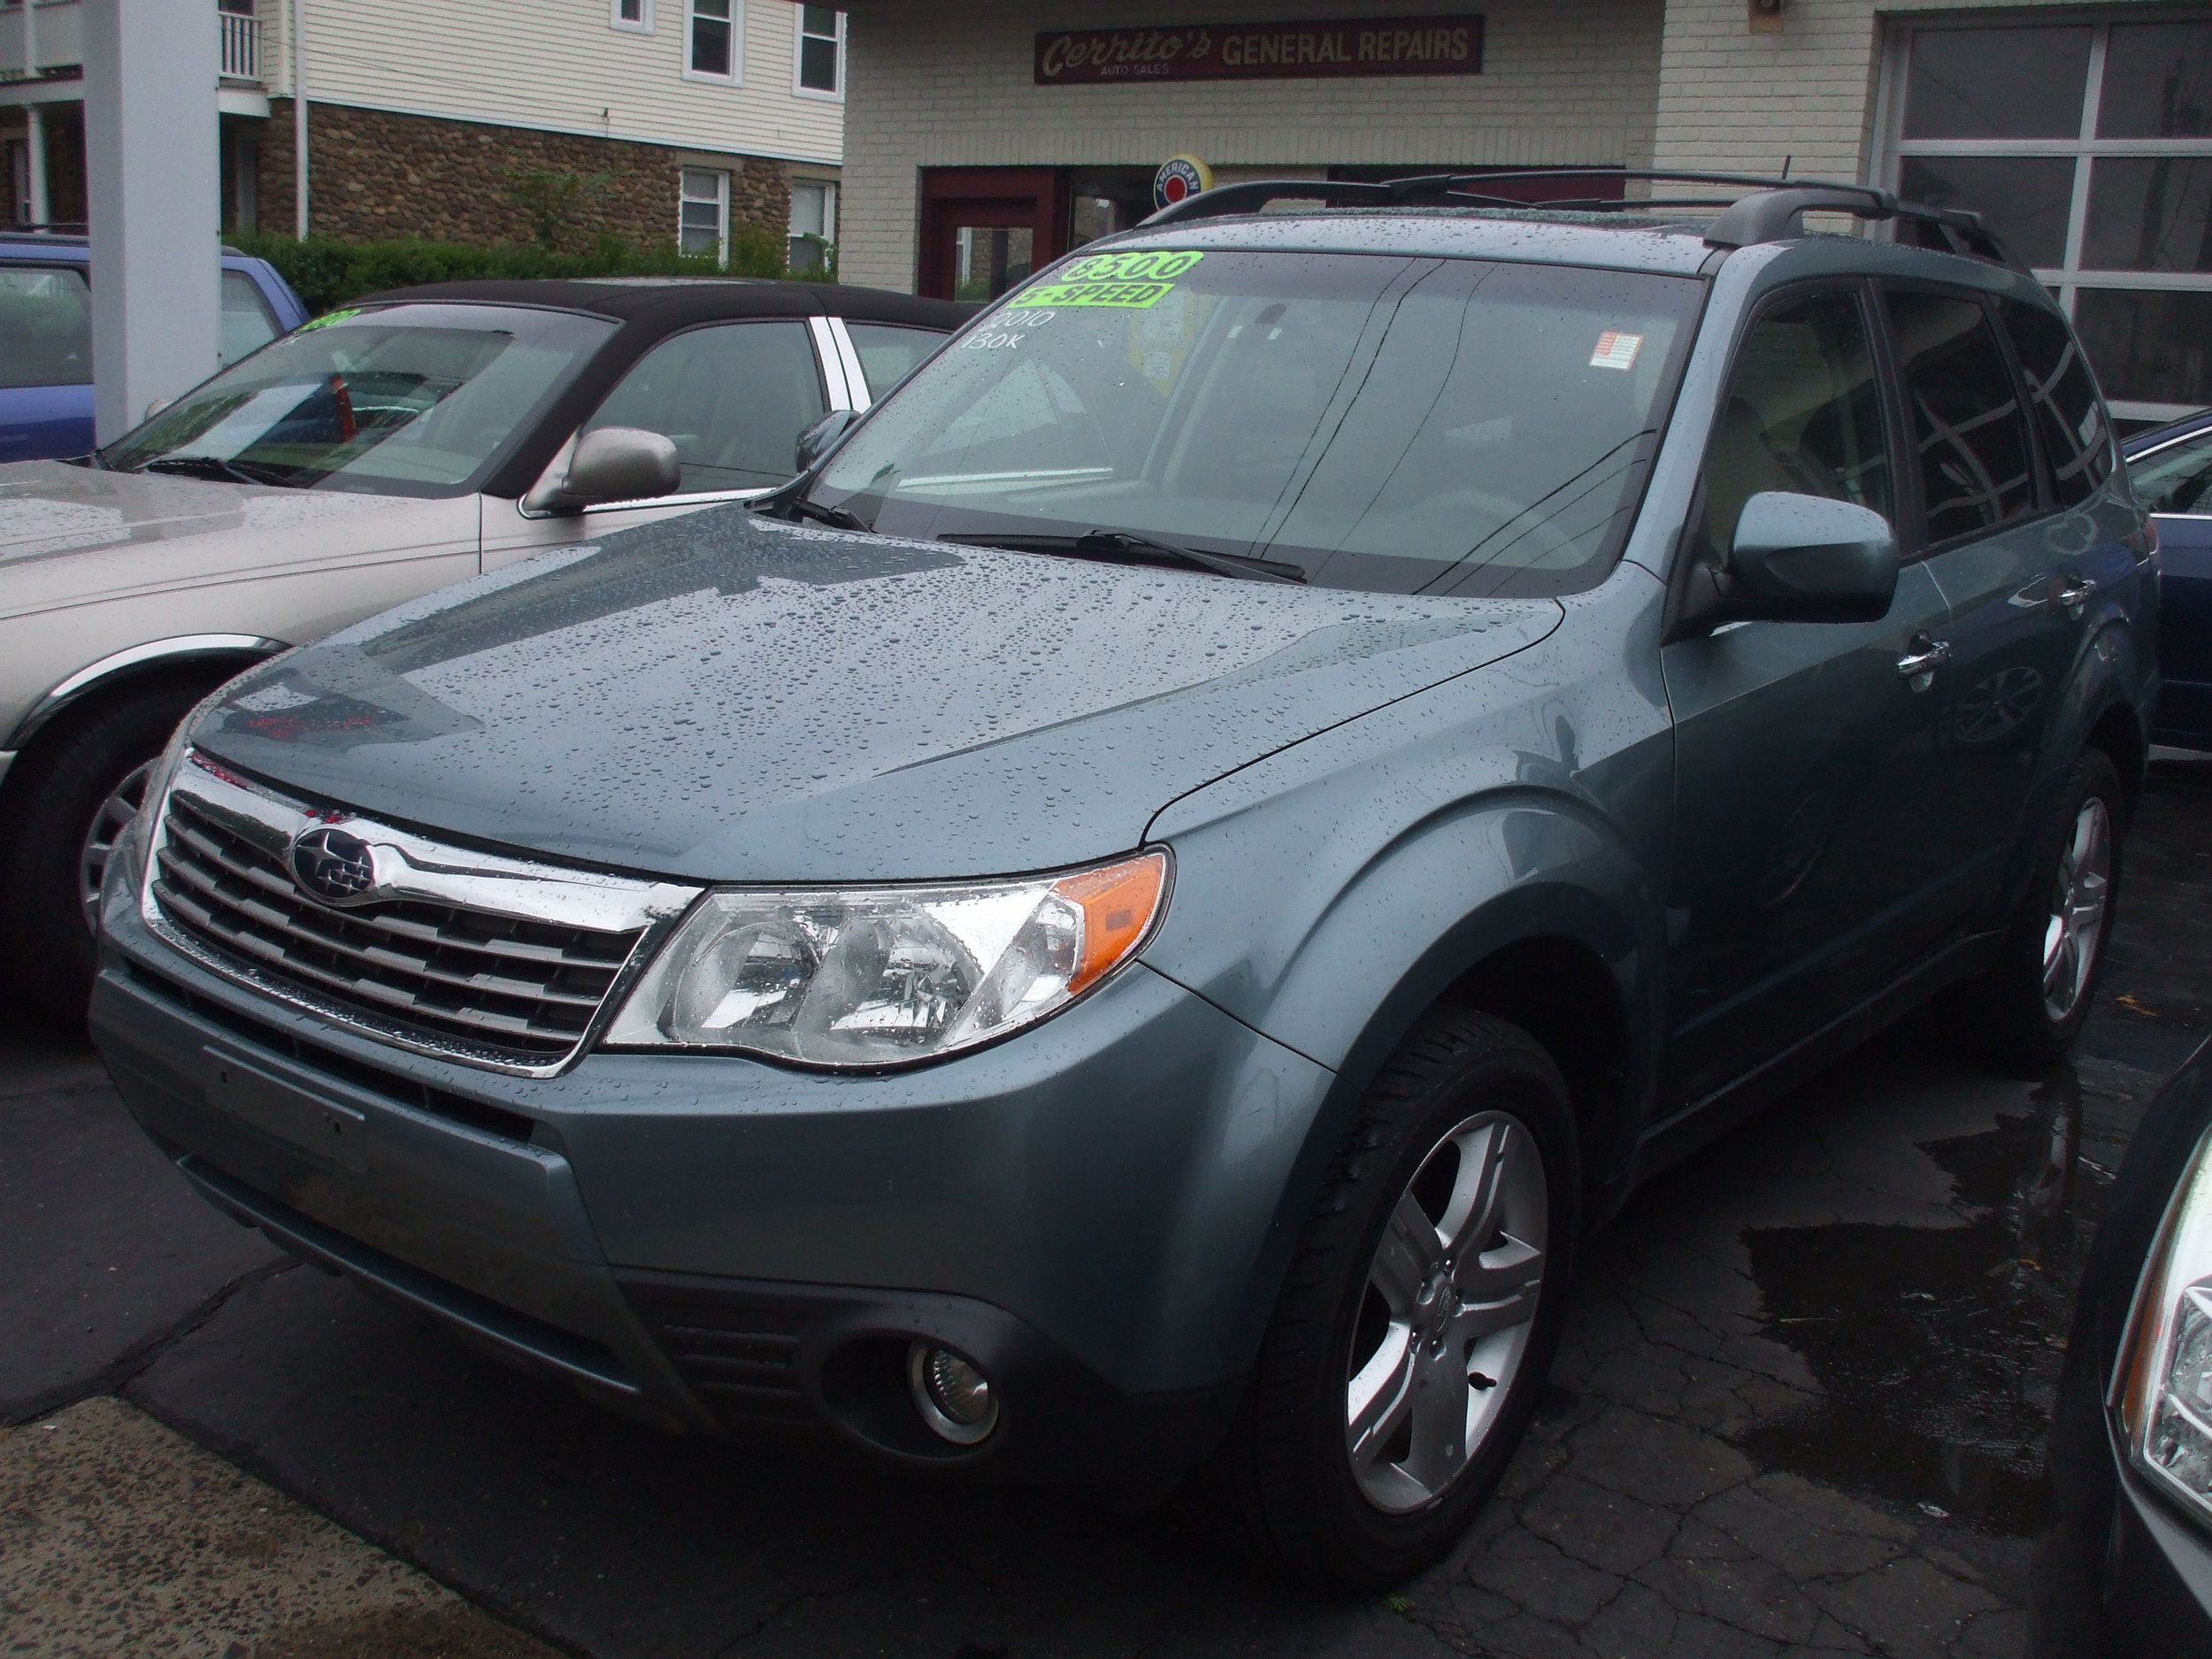 2010 Subaru Forester Blue $ 8,500       stock # 17158 5spd 130k Great Condition